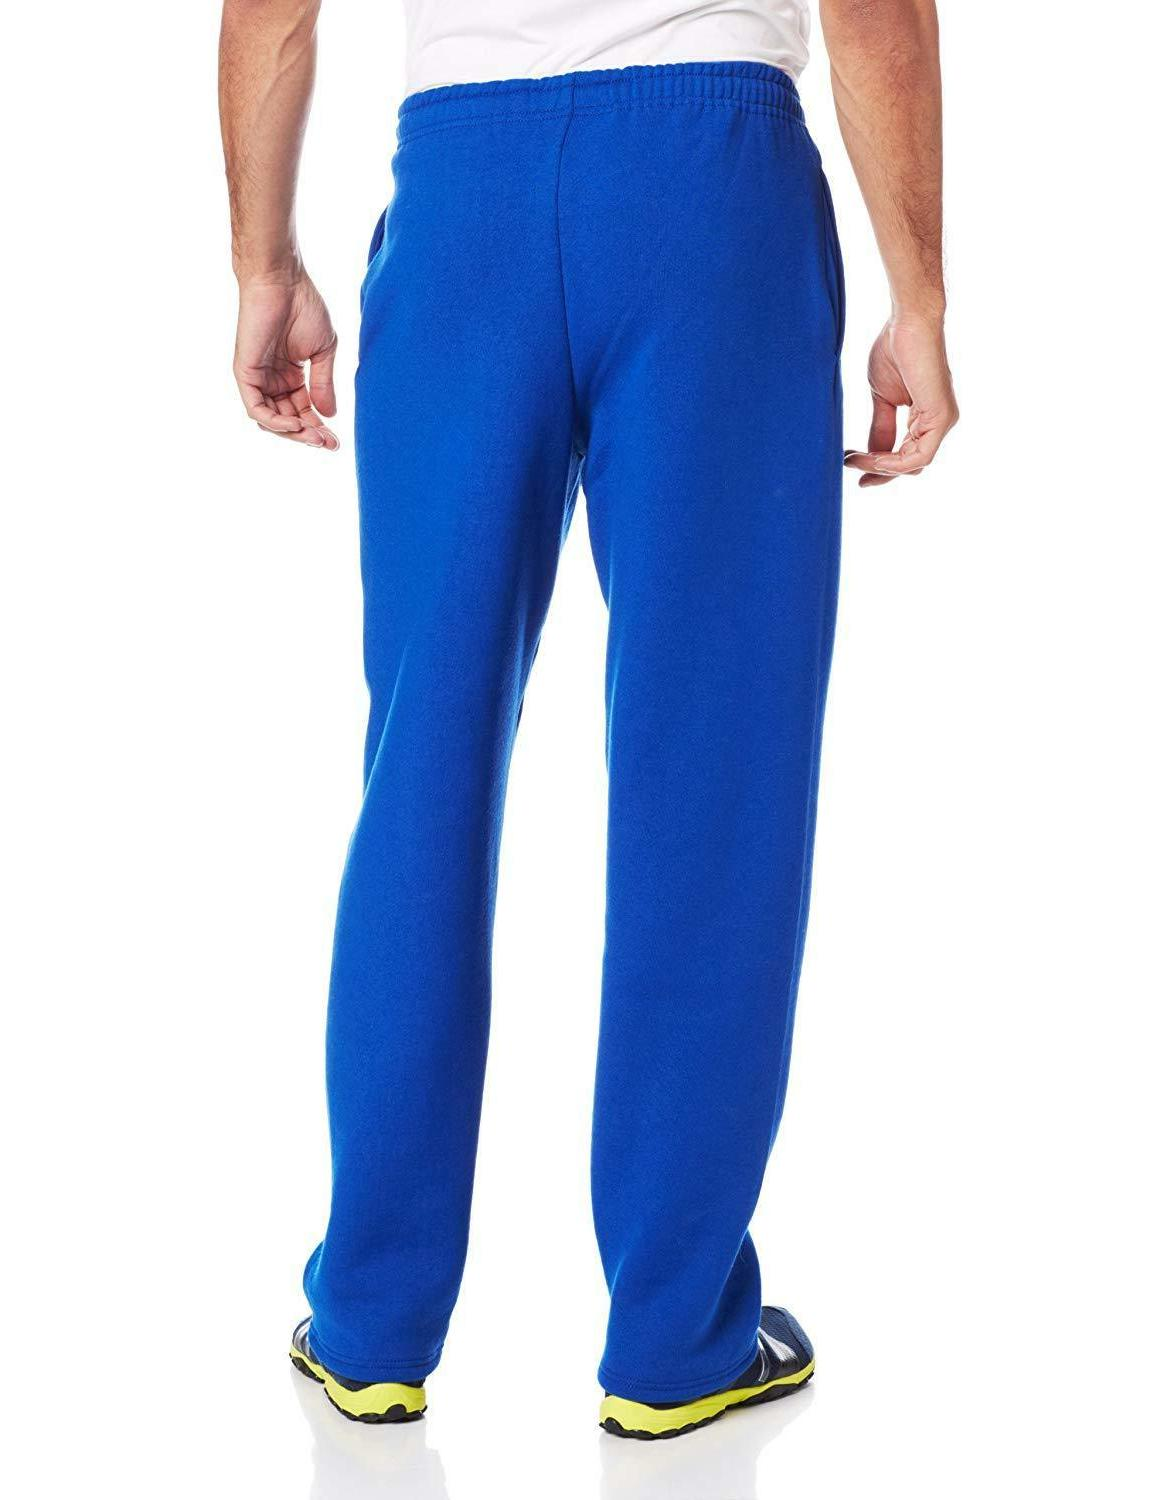 Russell Athletic Open Bottom Sweatpants Pockets